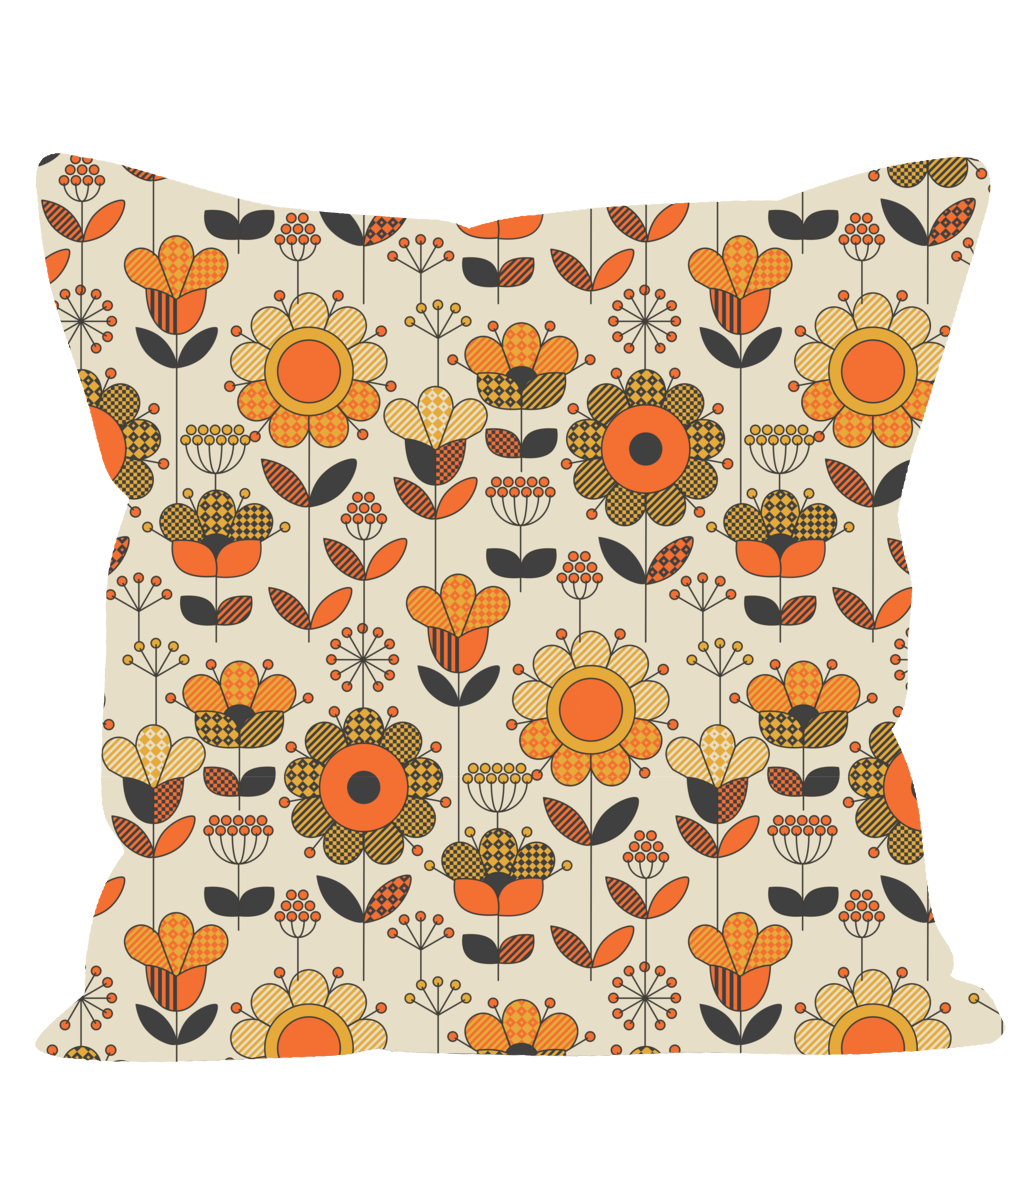 Retro Vintage Throw Cushion in an Orange and Brown Floral Pattern